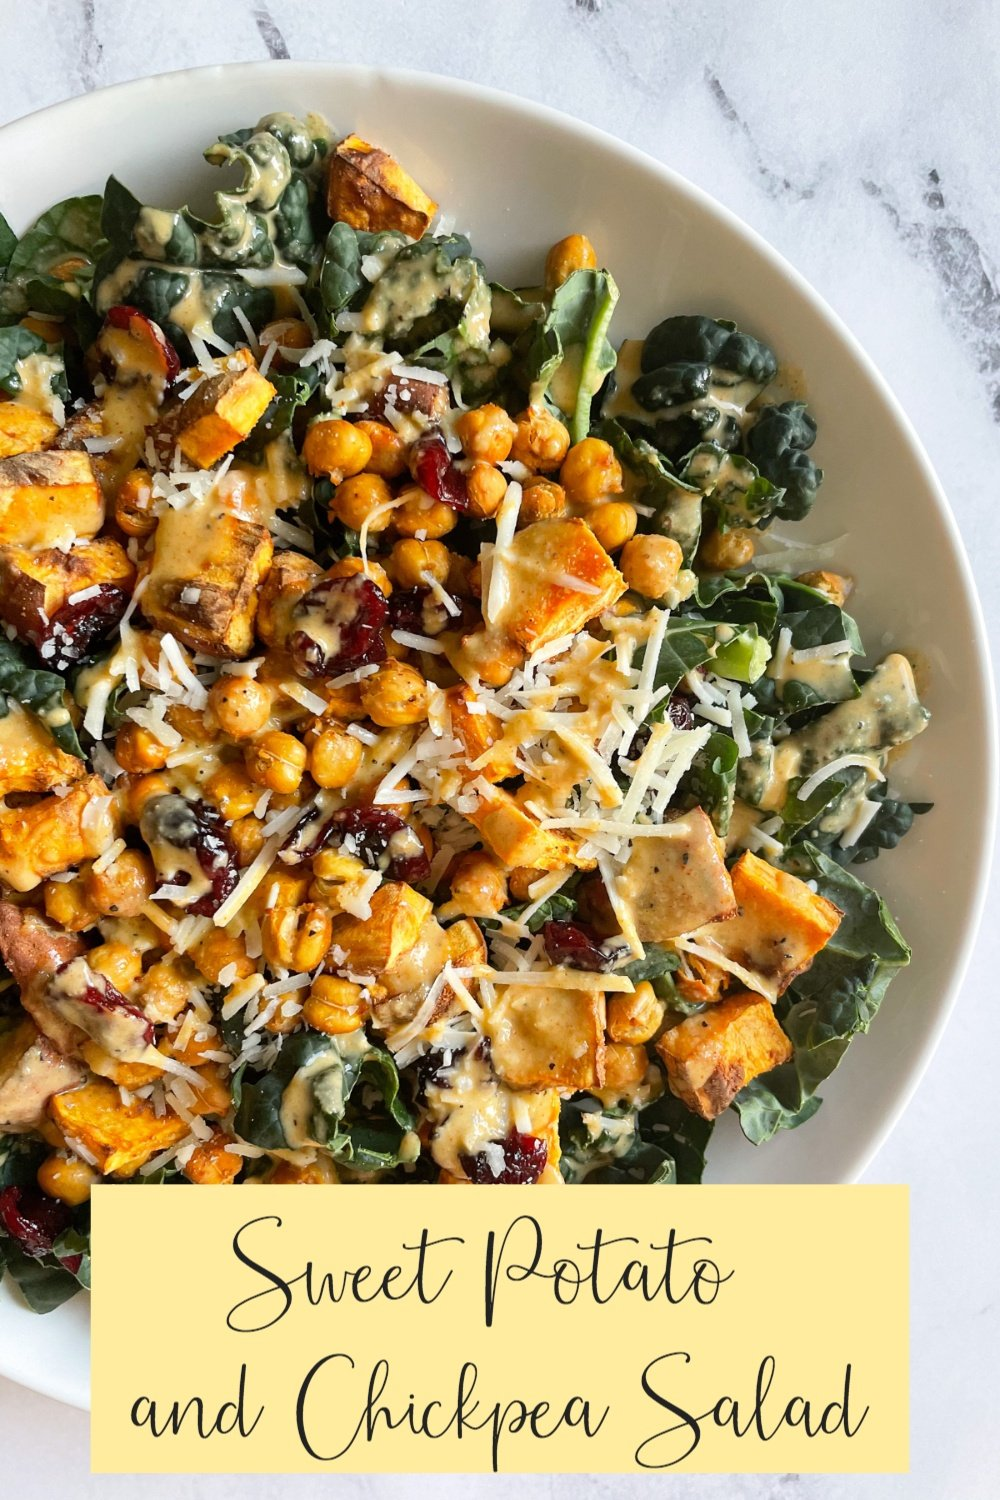 Sweet Potato and Chickpea Salad on White Plate with Text Overlay